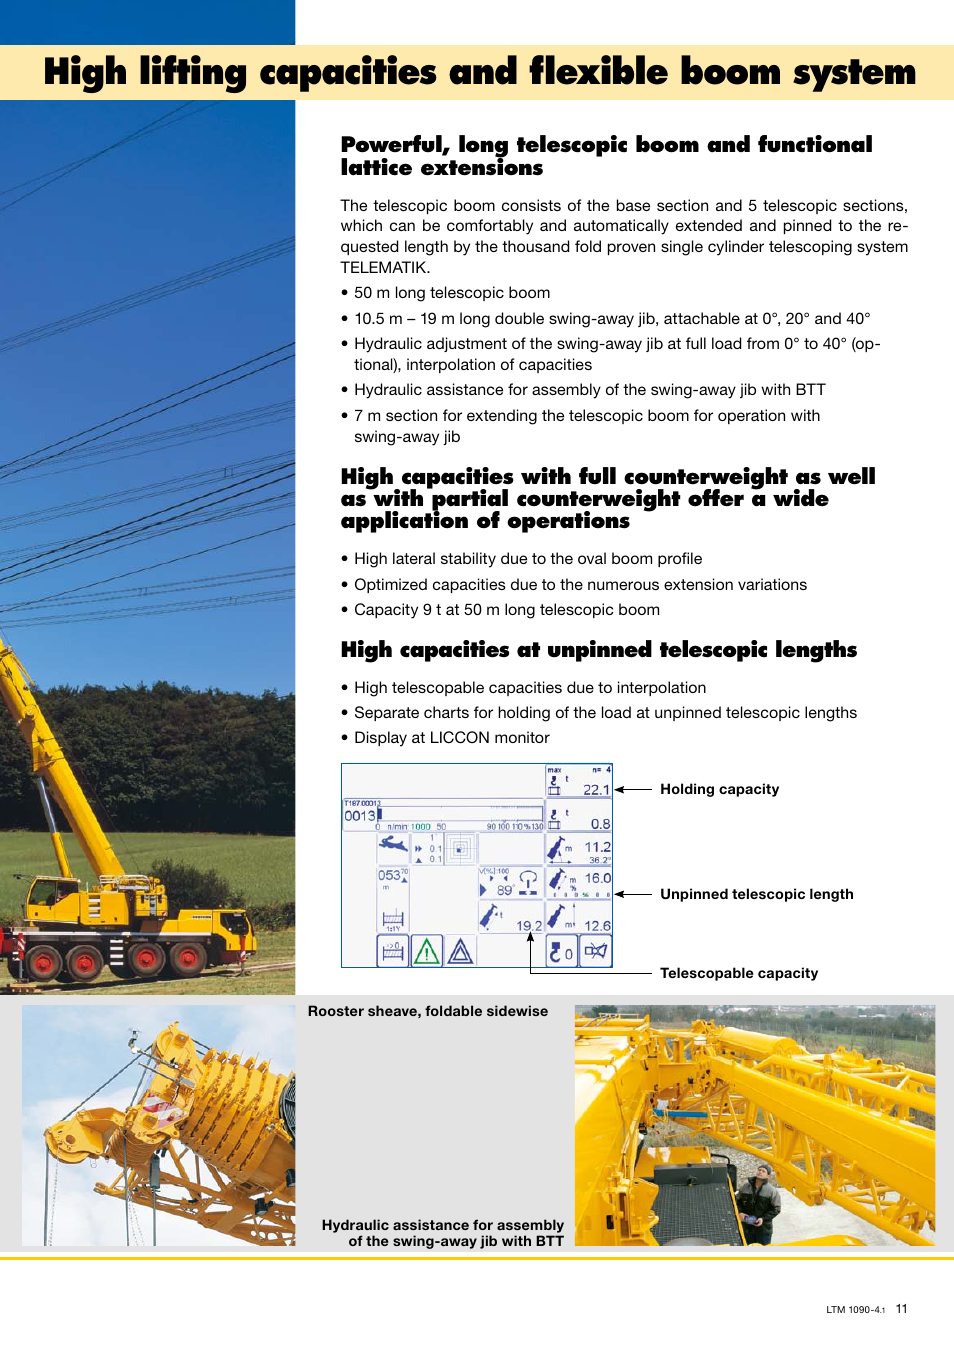 High lifting capacities and flexible boom system, High